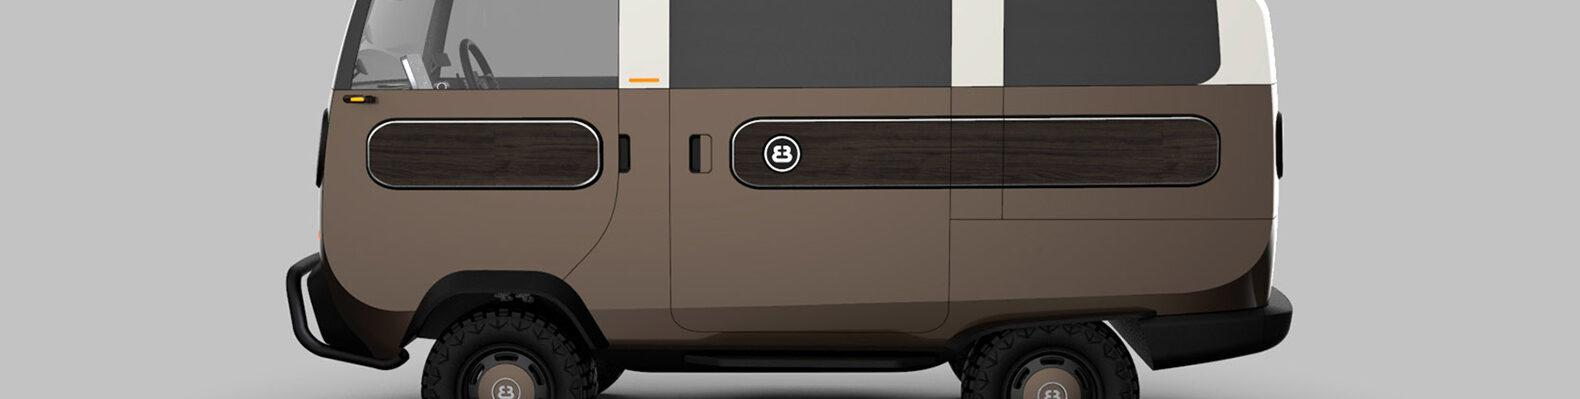 the exterior of a brown and white boxy van.